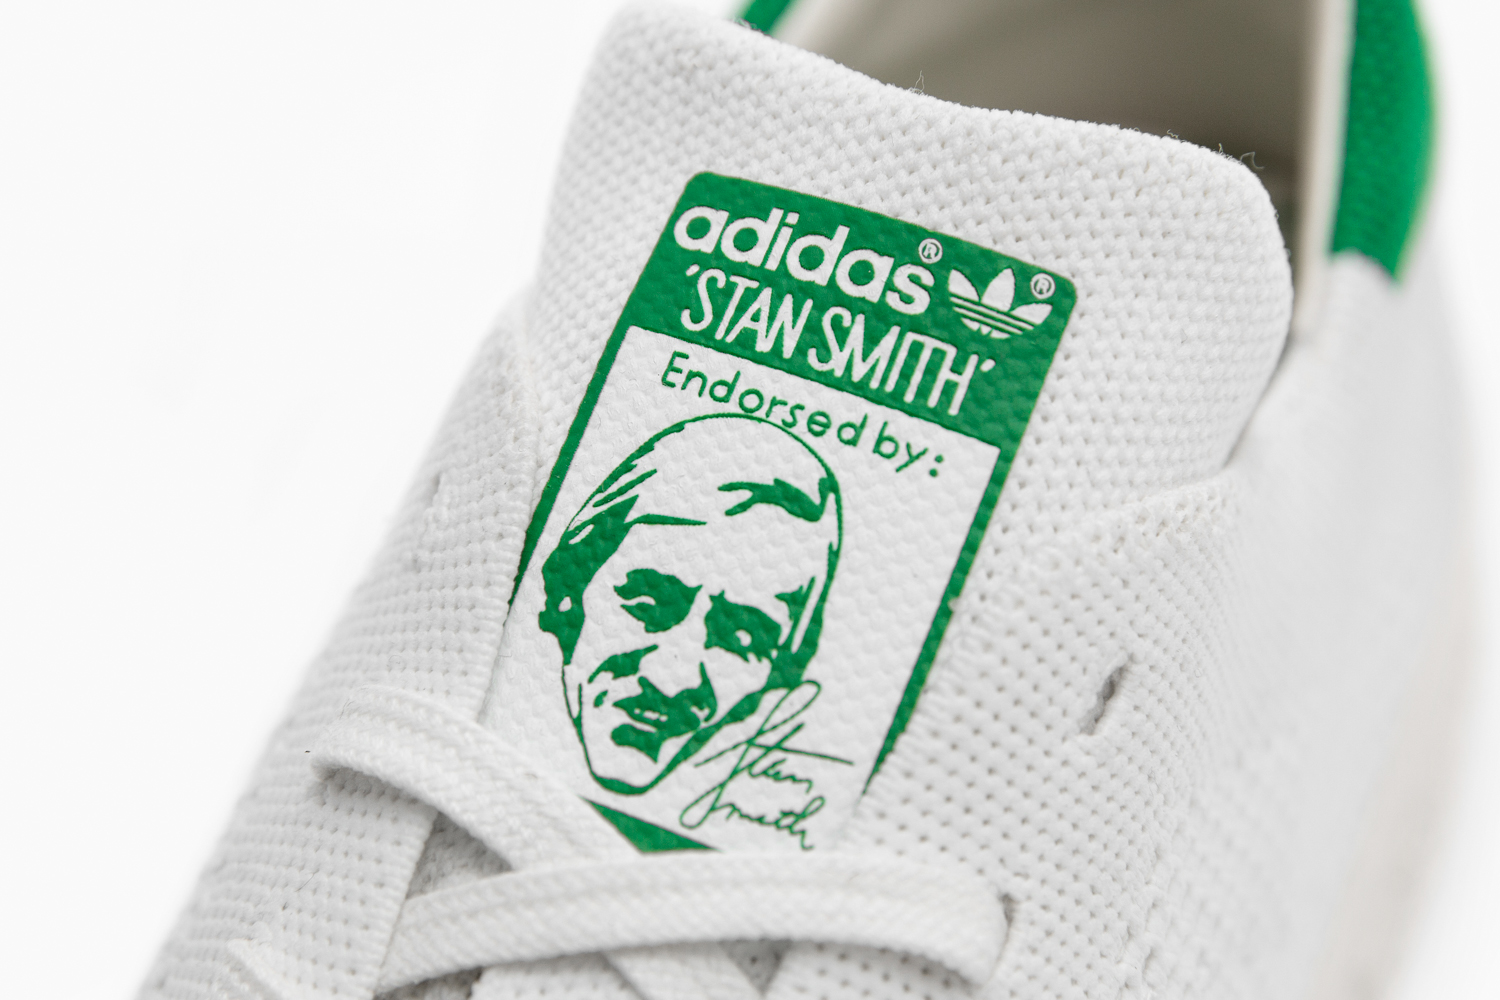 adidas stan smith endorsed by